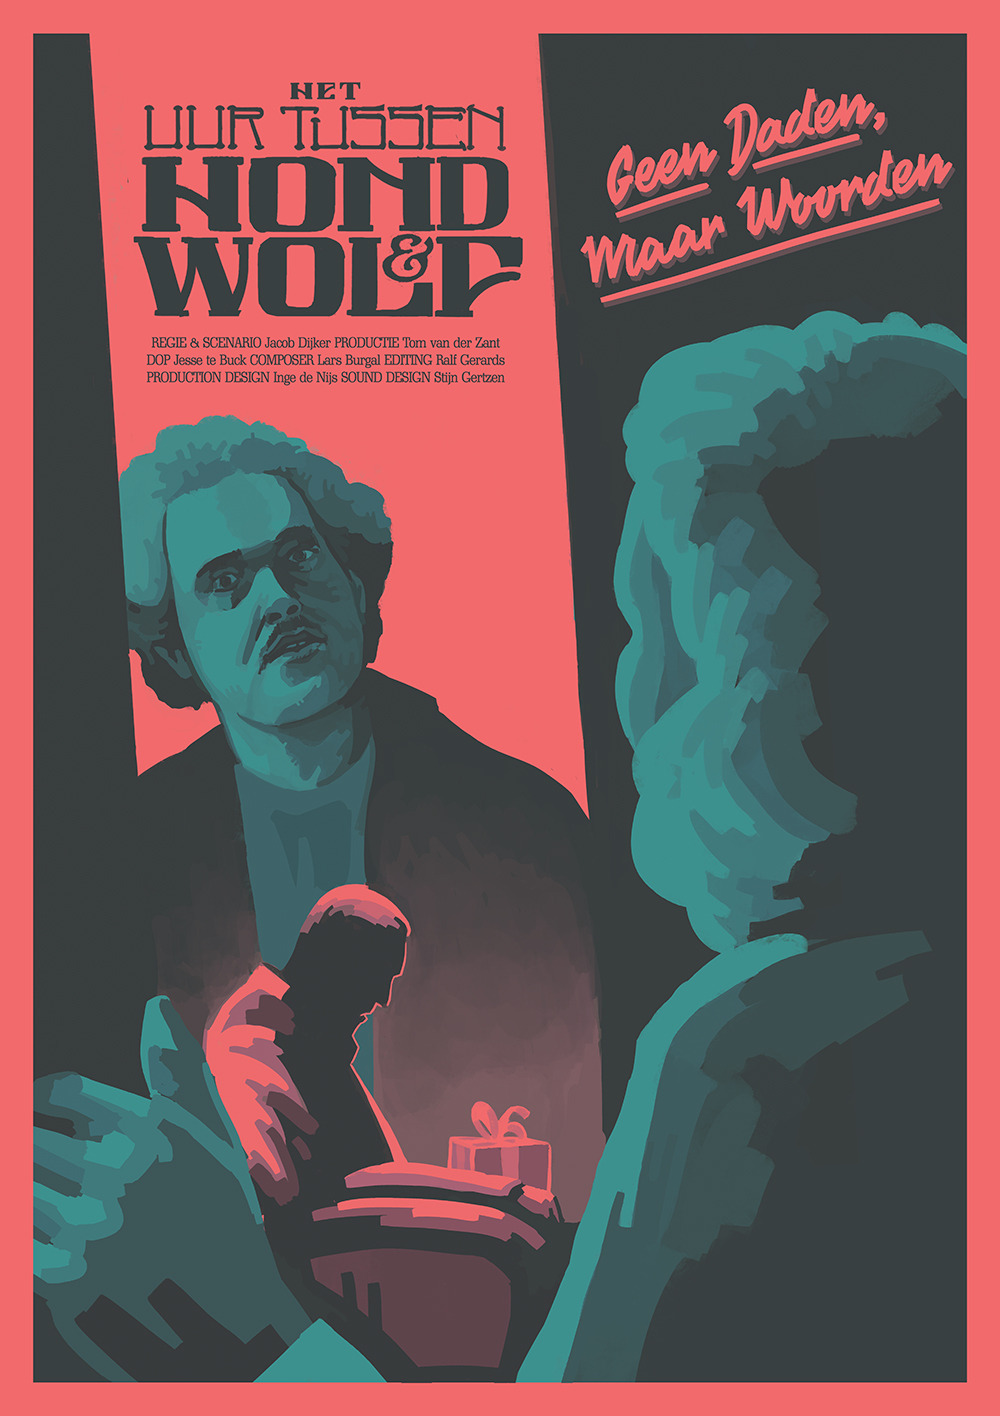 Het Uur Tussen Hond & Wolf - For this film poster I was asked to make an eerie poster that carried references to Dutch Socialist Party Posters from the seventies.The plotline of the film goes as follows:A retired politician who's still active as a political writer gets a surprise guest one Sunday Afternoon. The guest seems to be a great fan of the writer, yet brings an unsettling message to the table.My goal here was to use broad strokes, along with only three colors, while rendering the messenger in an awkward, untrustworthy way.The film starred on the NFF, you can read more about it here.